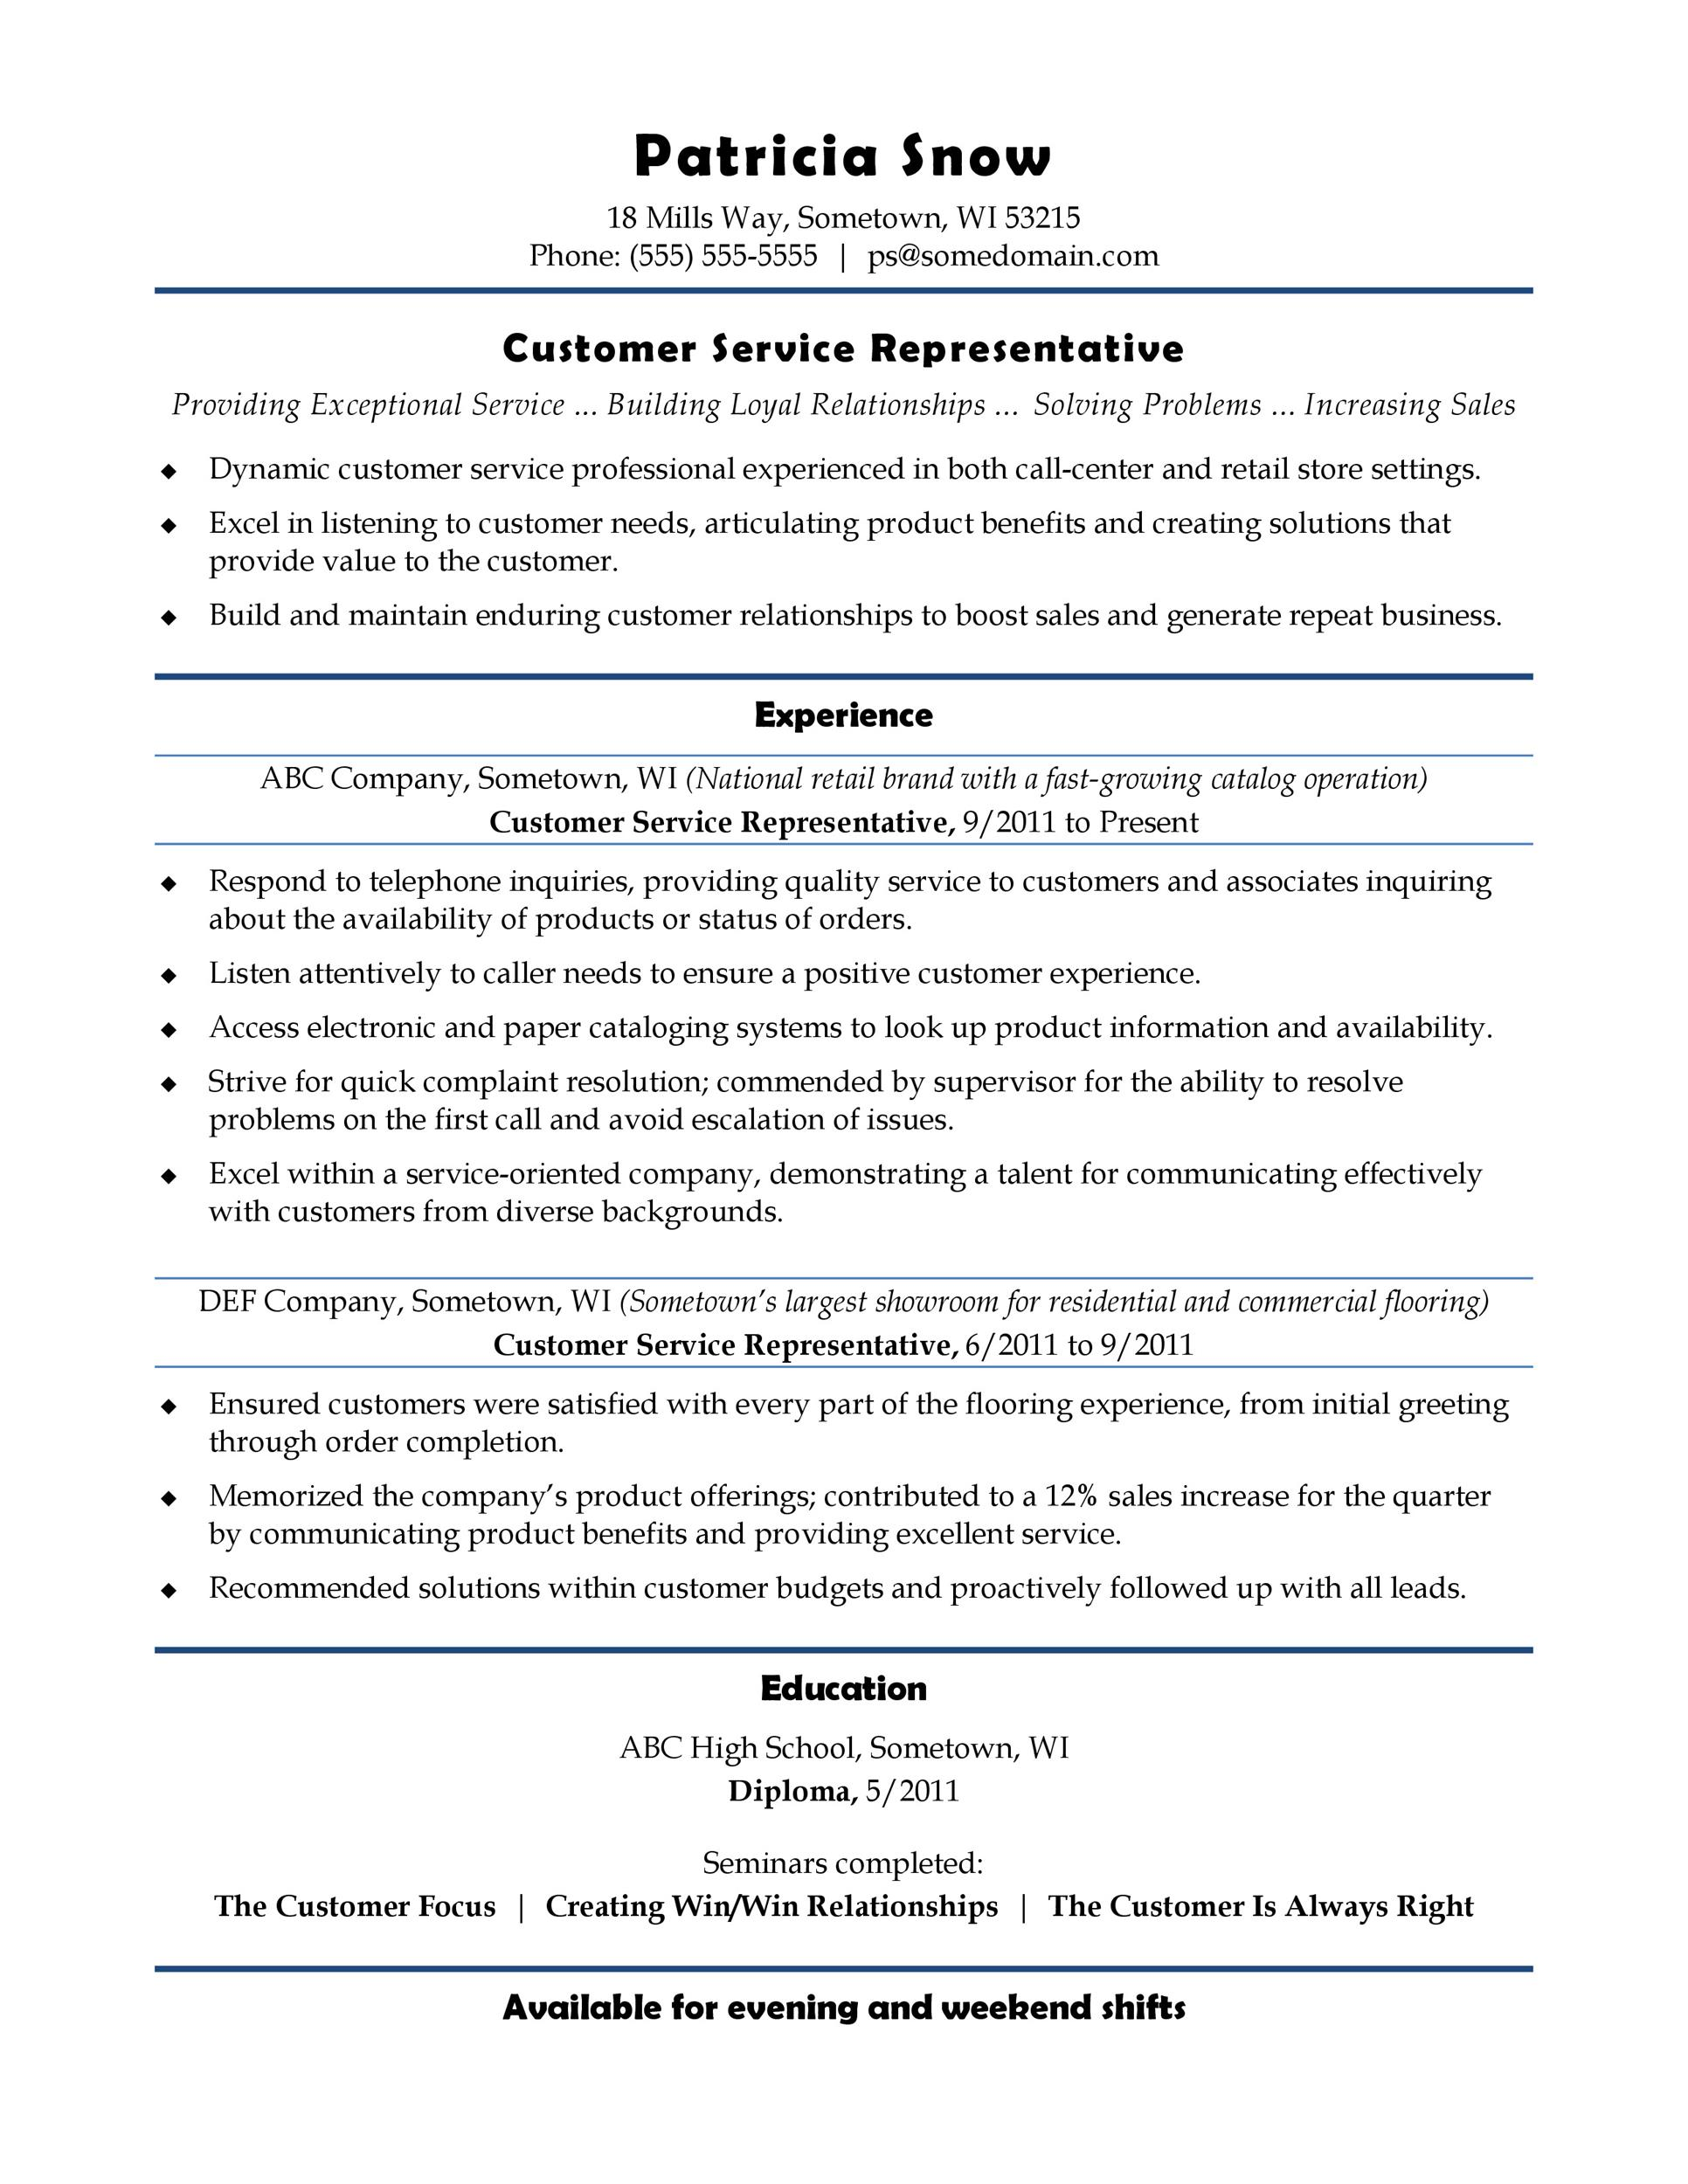 sample functional resume customer service representative